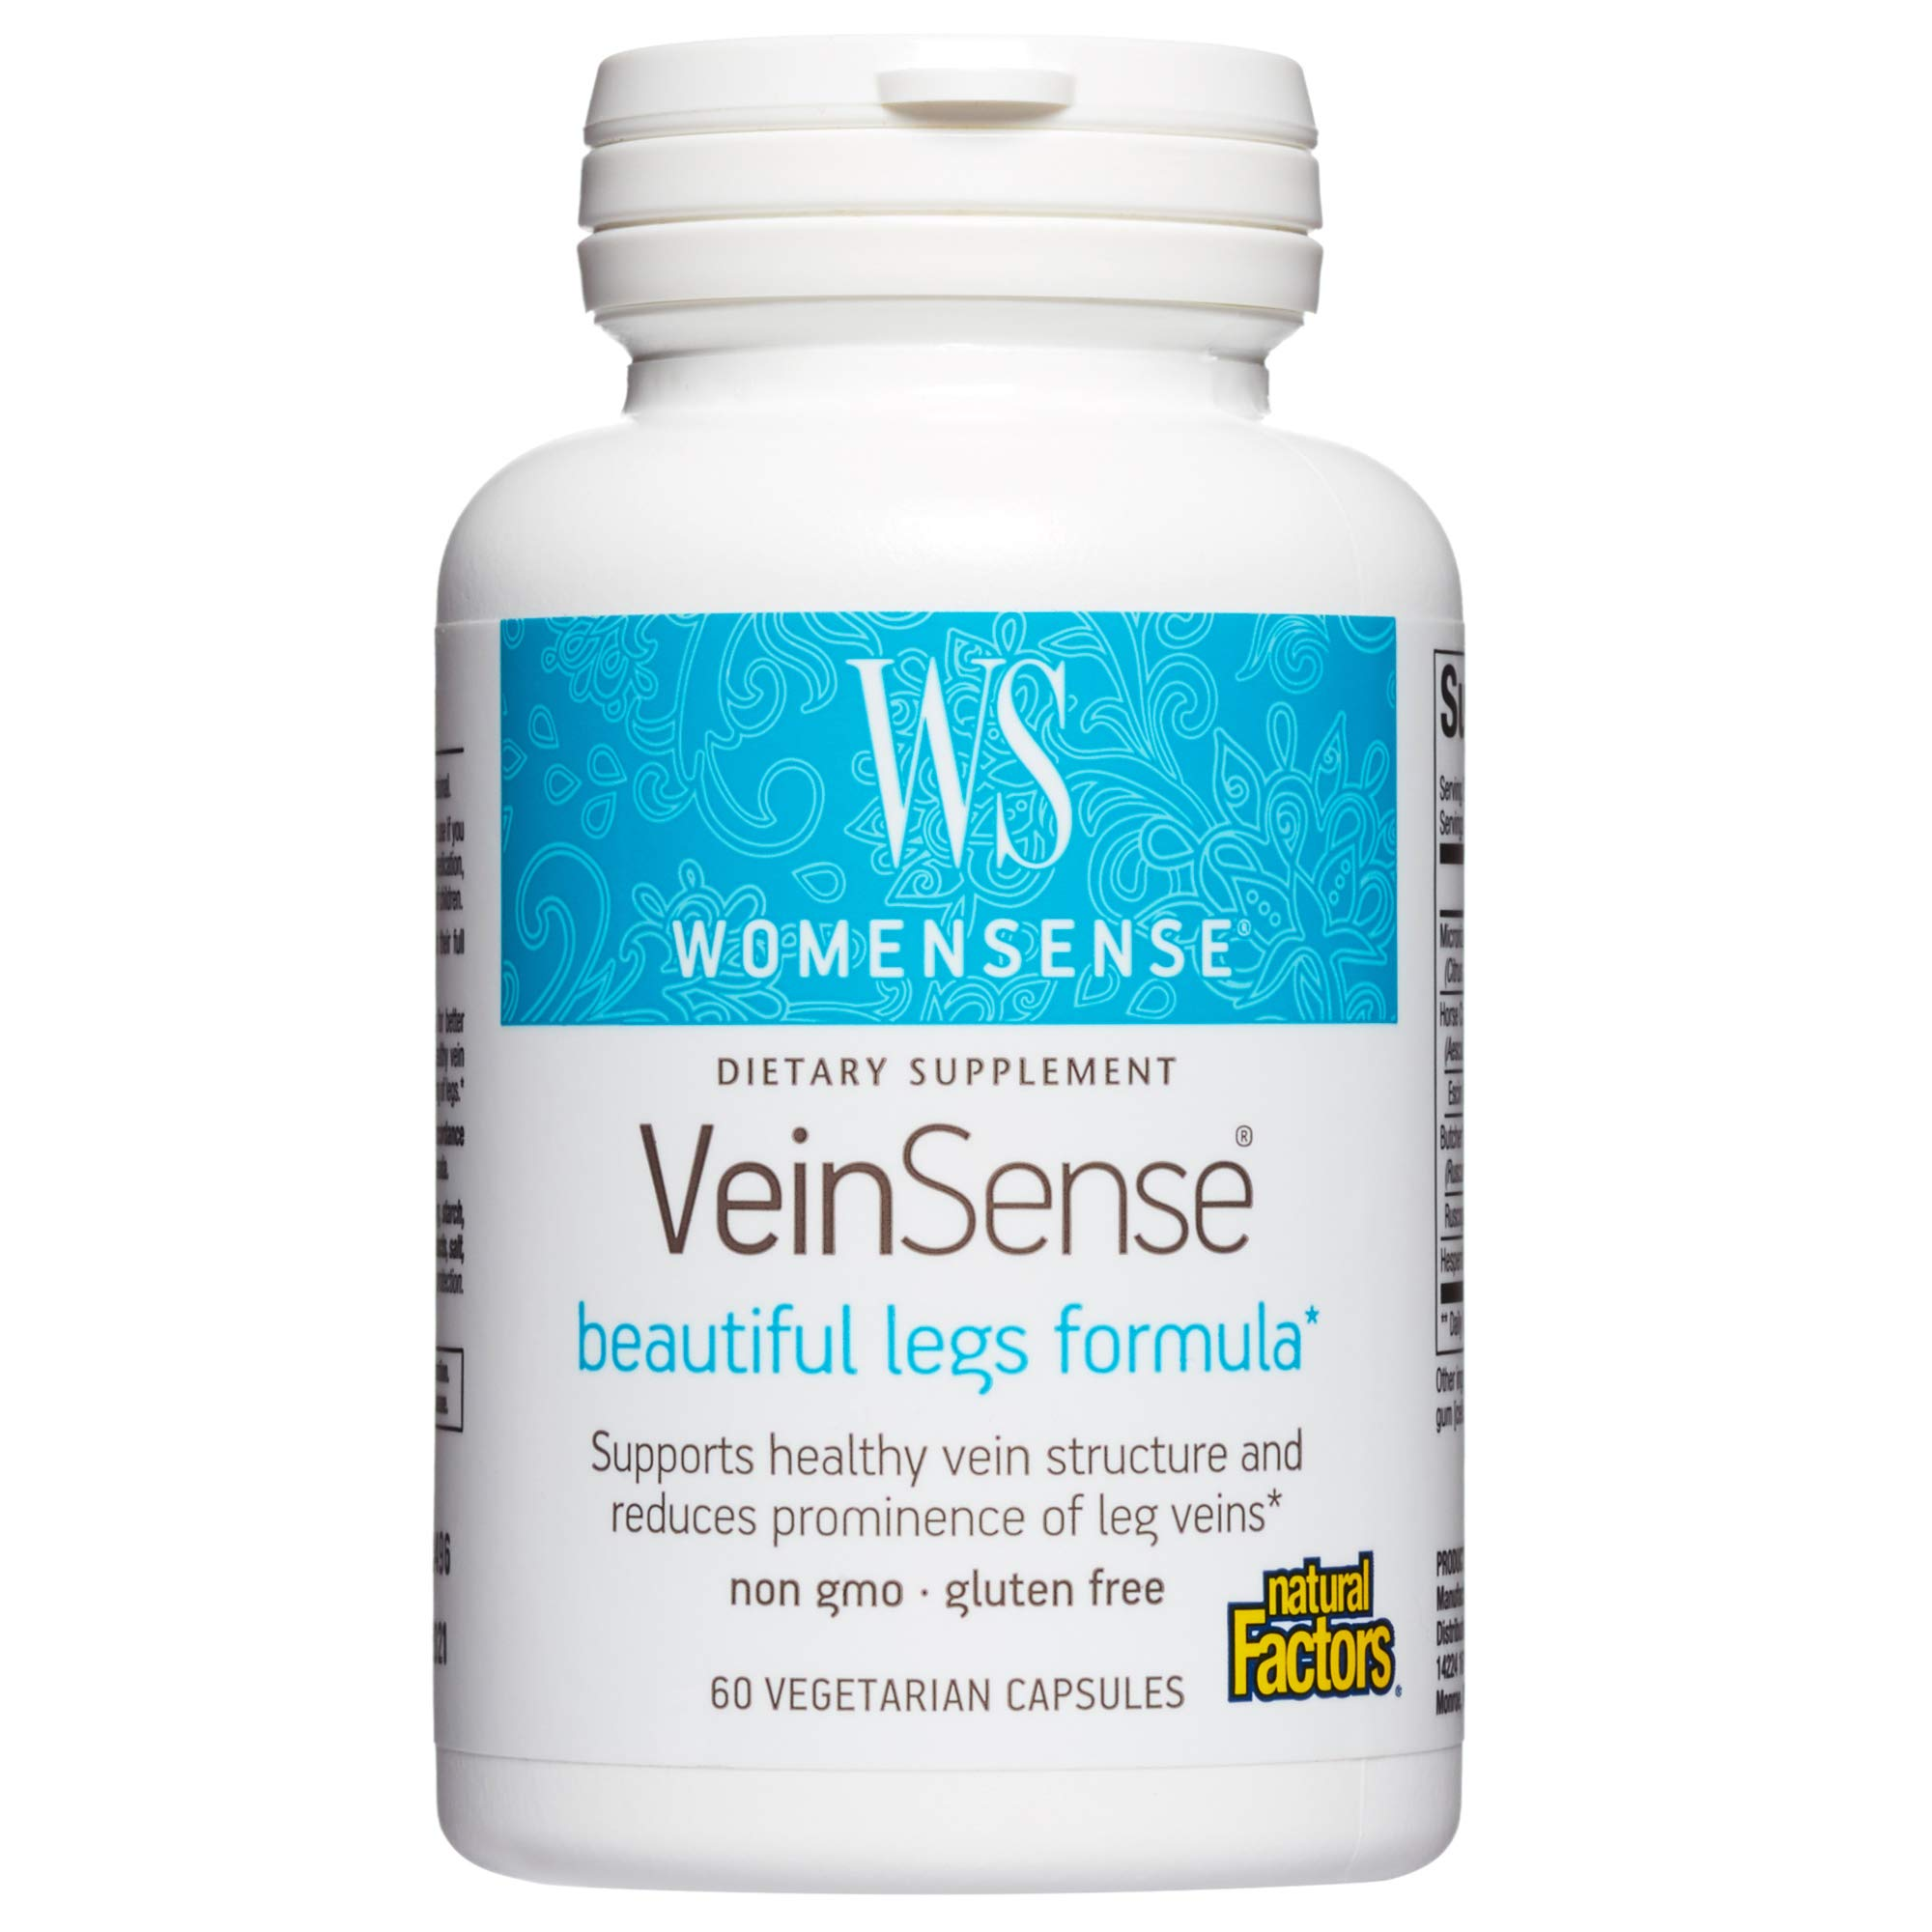 WomenSense VeinSense by Natural Factors, Beauty Supplement to Support Healthy Veins and Beautiful Legs, Vegan, Non-GMO, 60 capsules (20 servings)